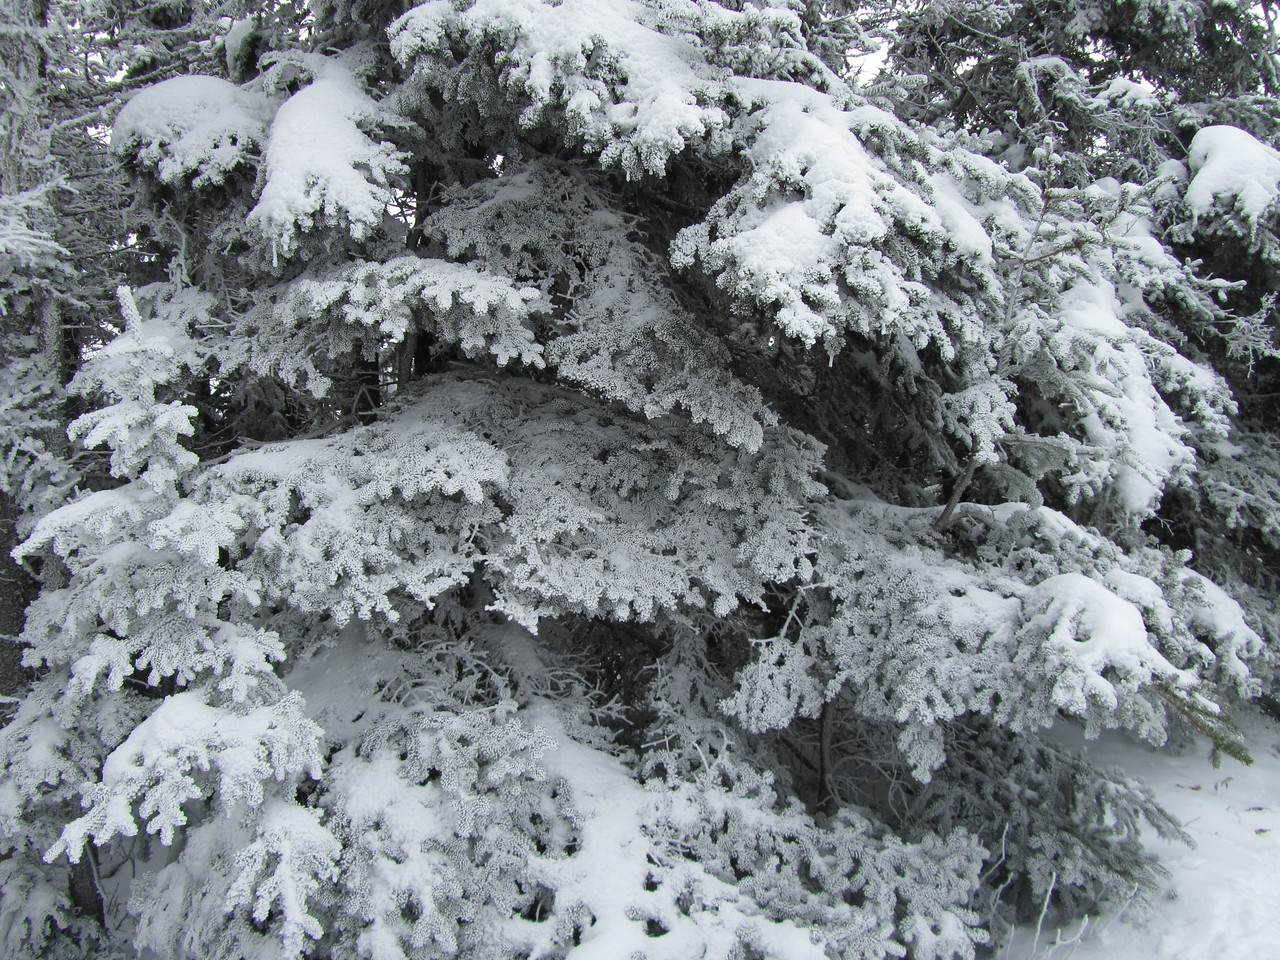 The snow and rain created these amazing crystals on the pines at the summit.